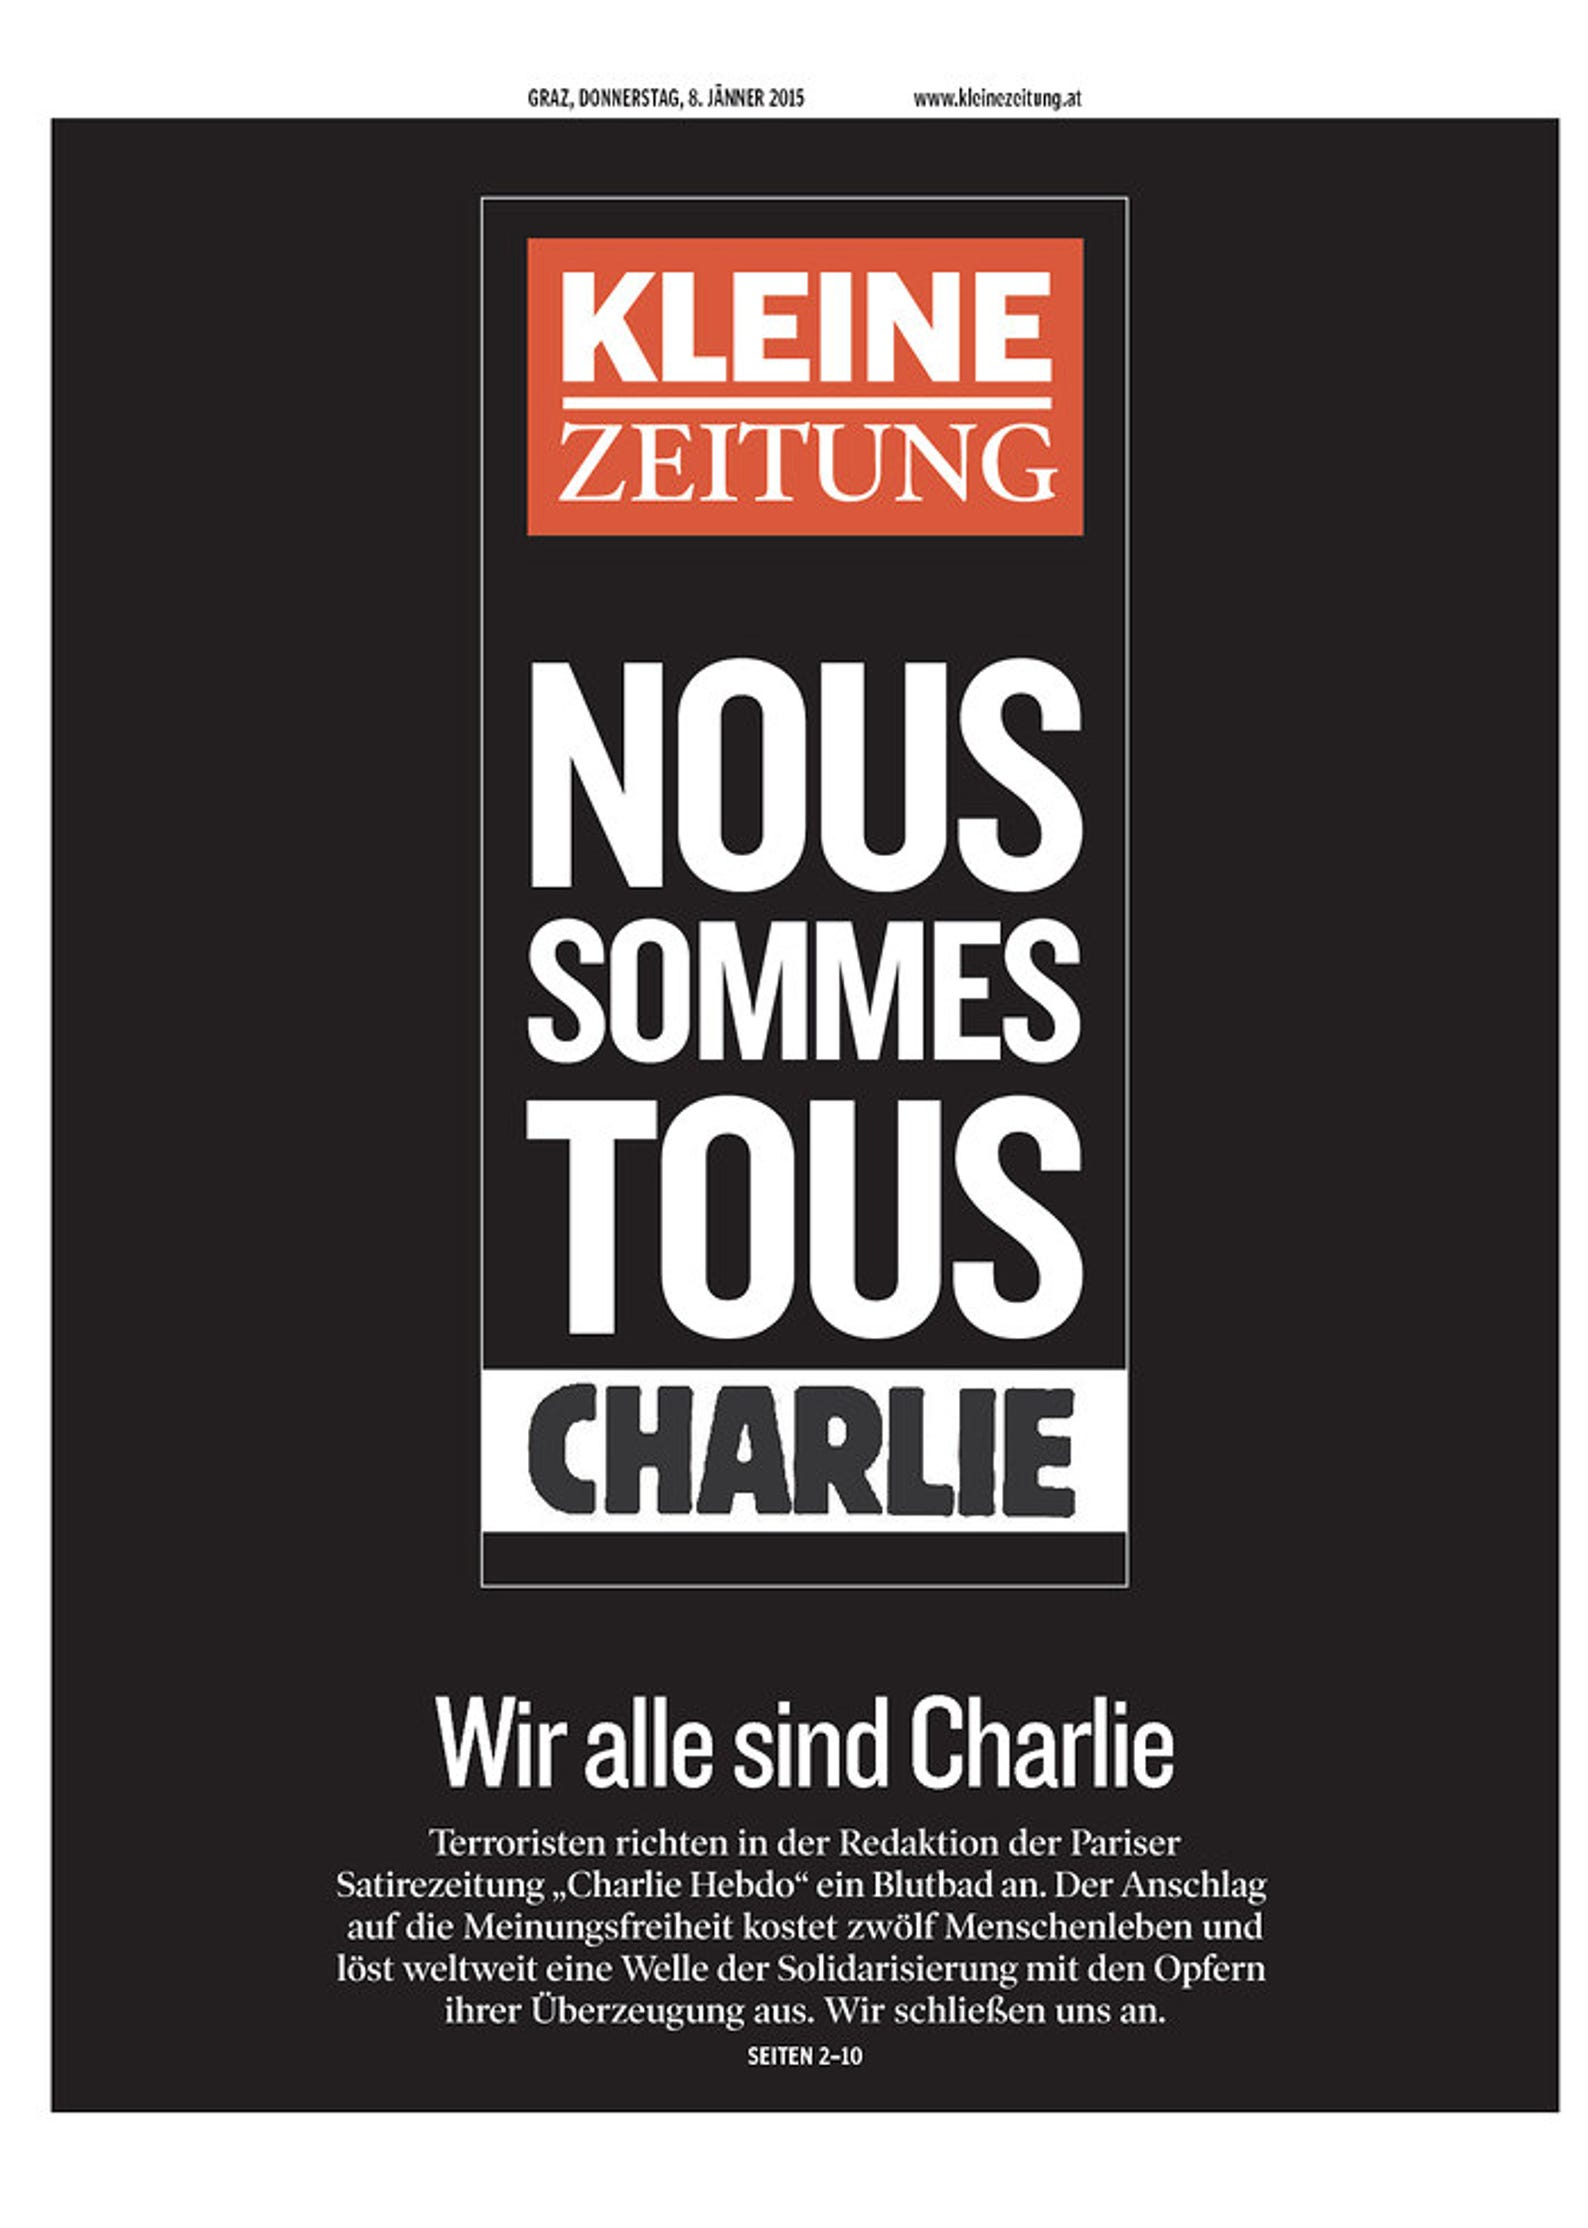 Paris Terror Attack Front Pages From Around The World